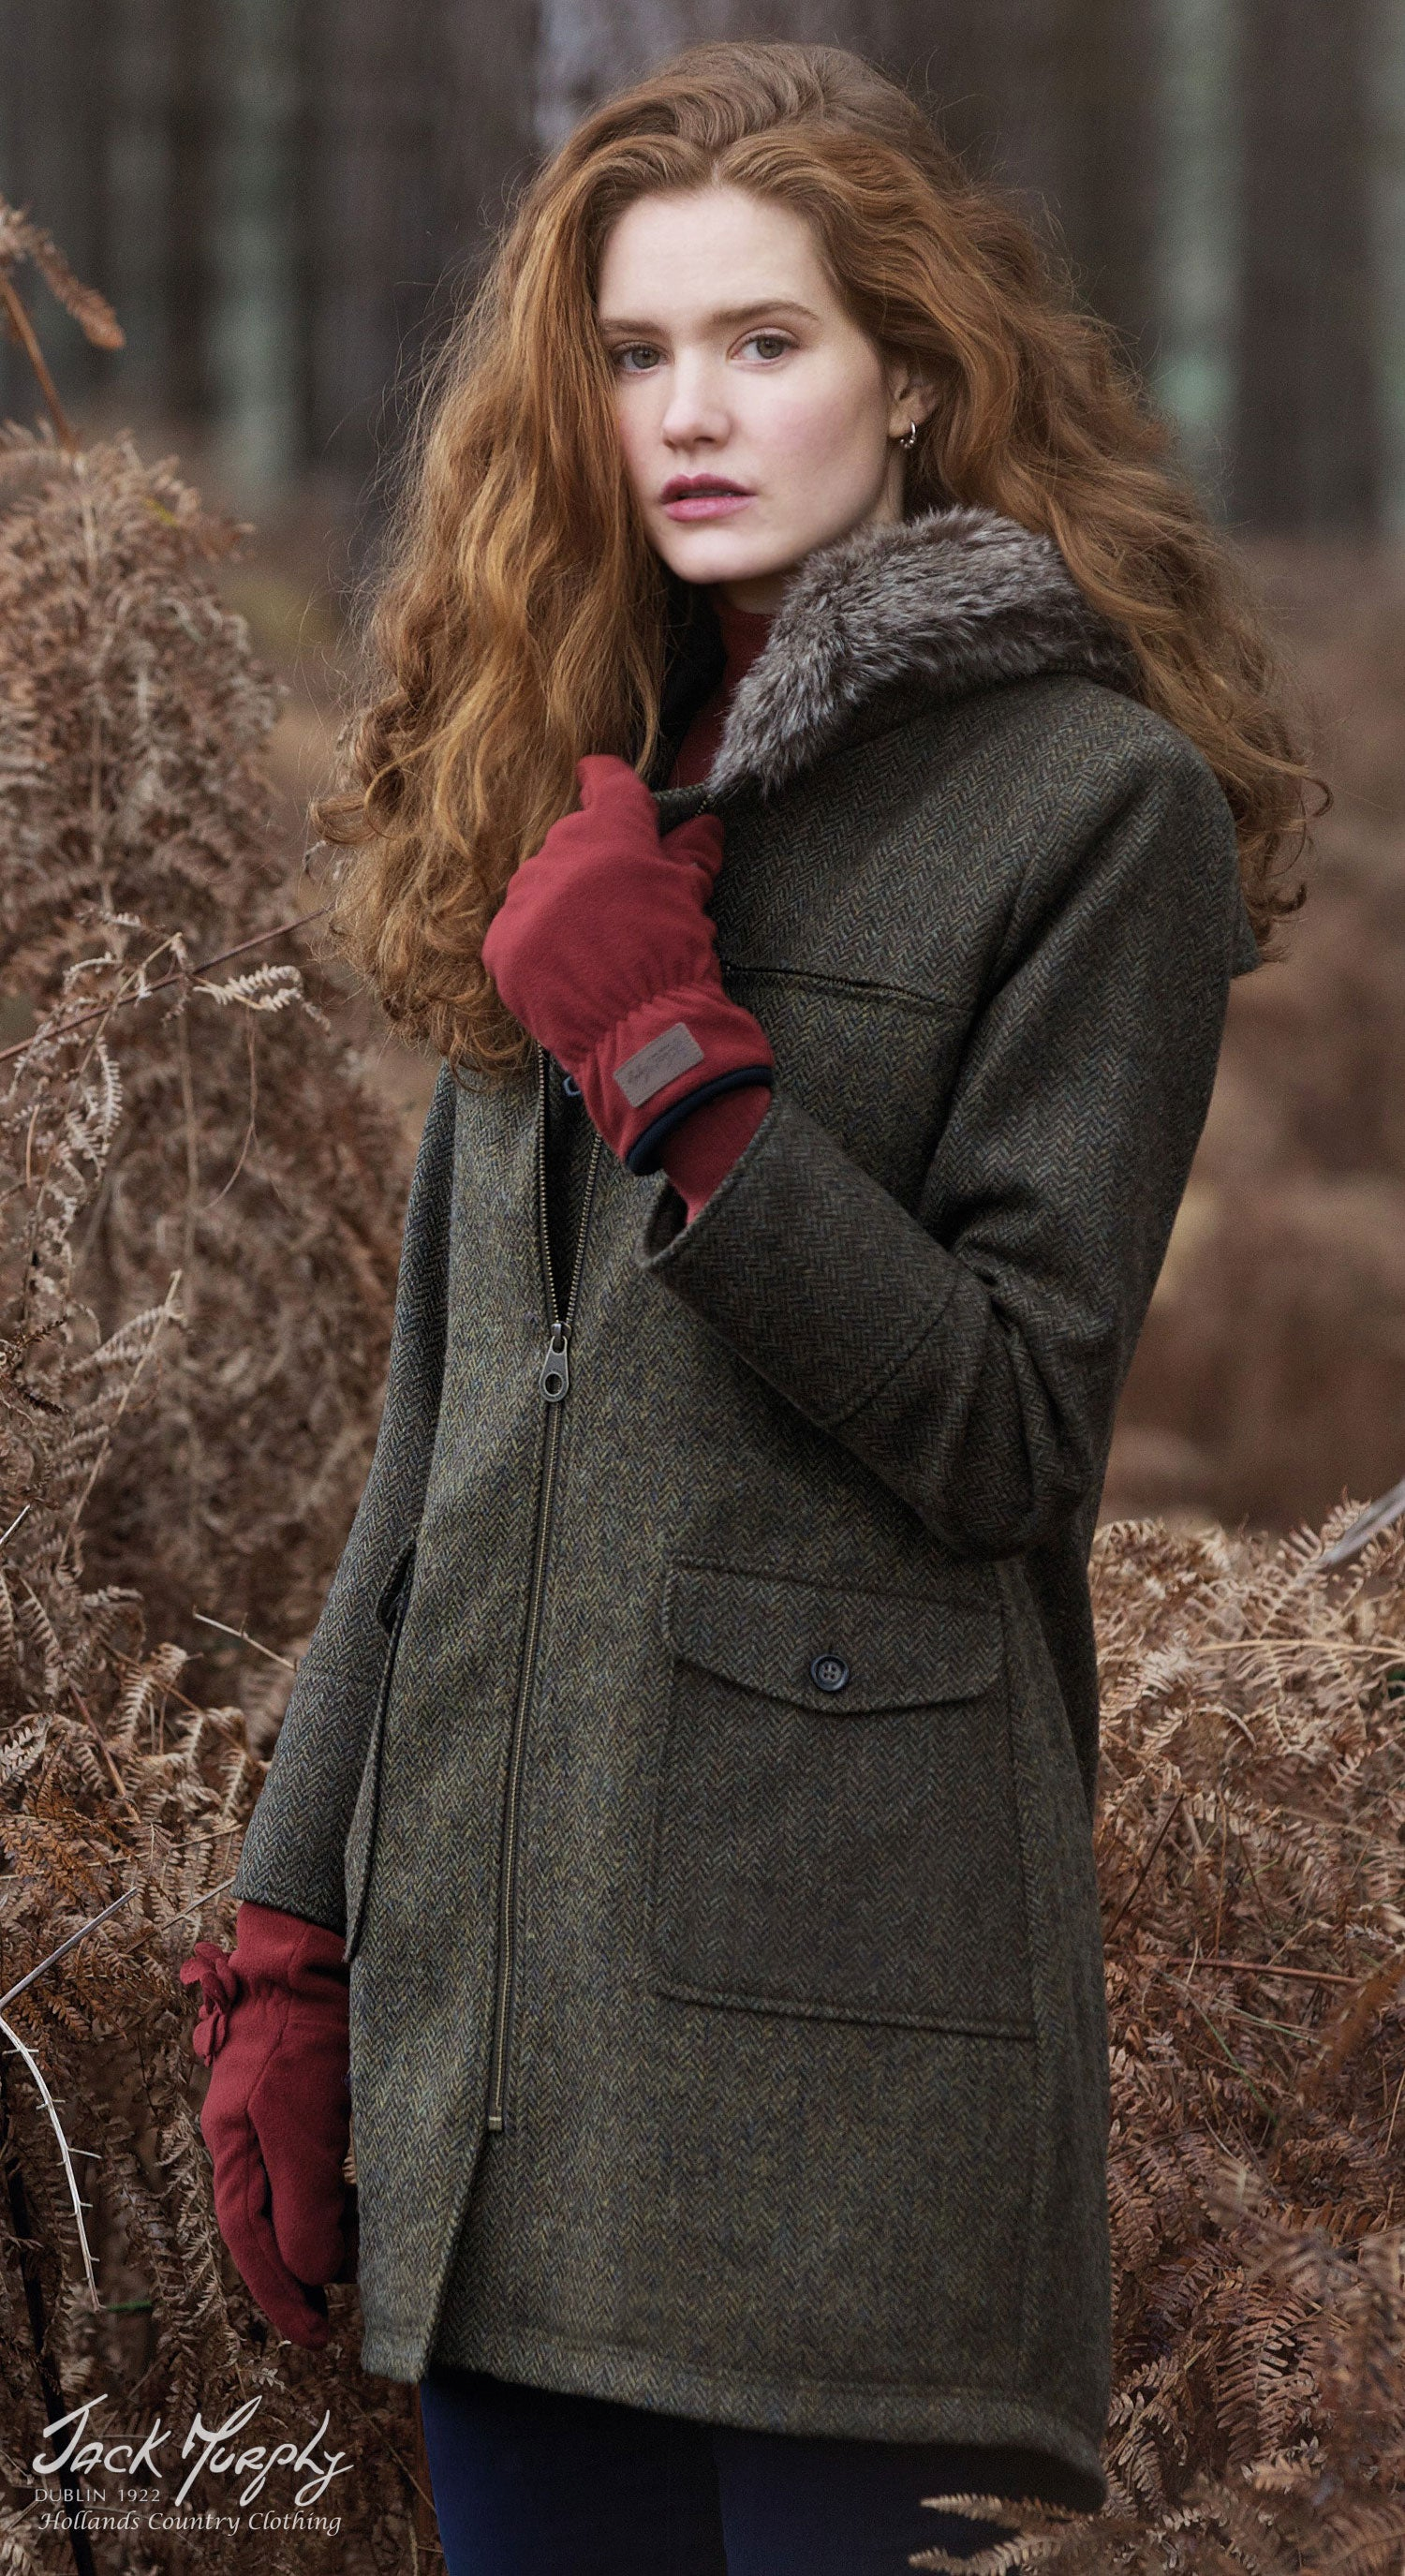 jen lady parka out in the wood looking for tweed